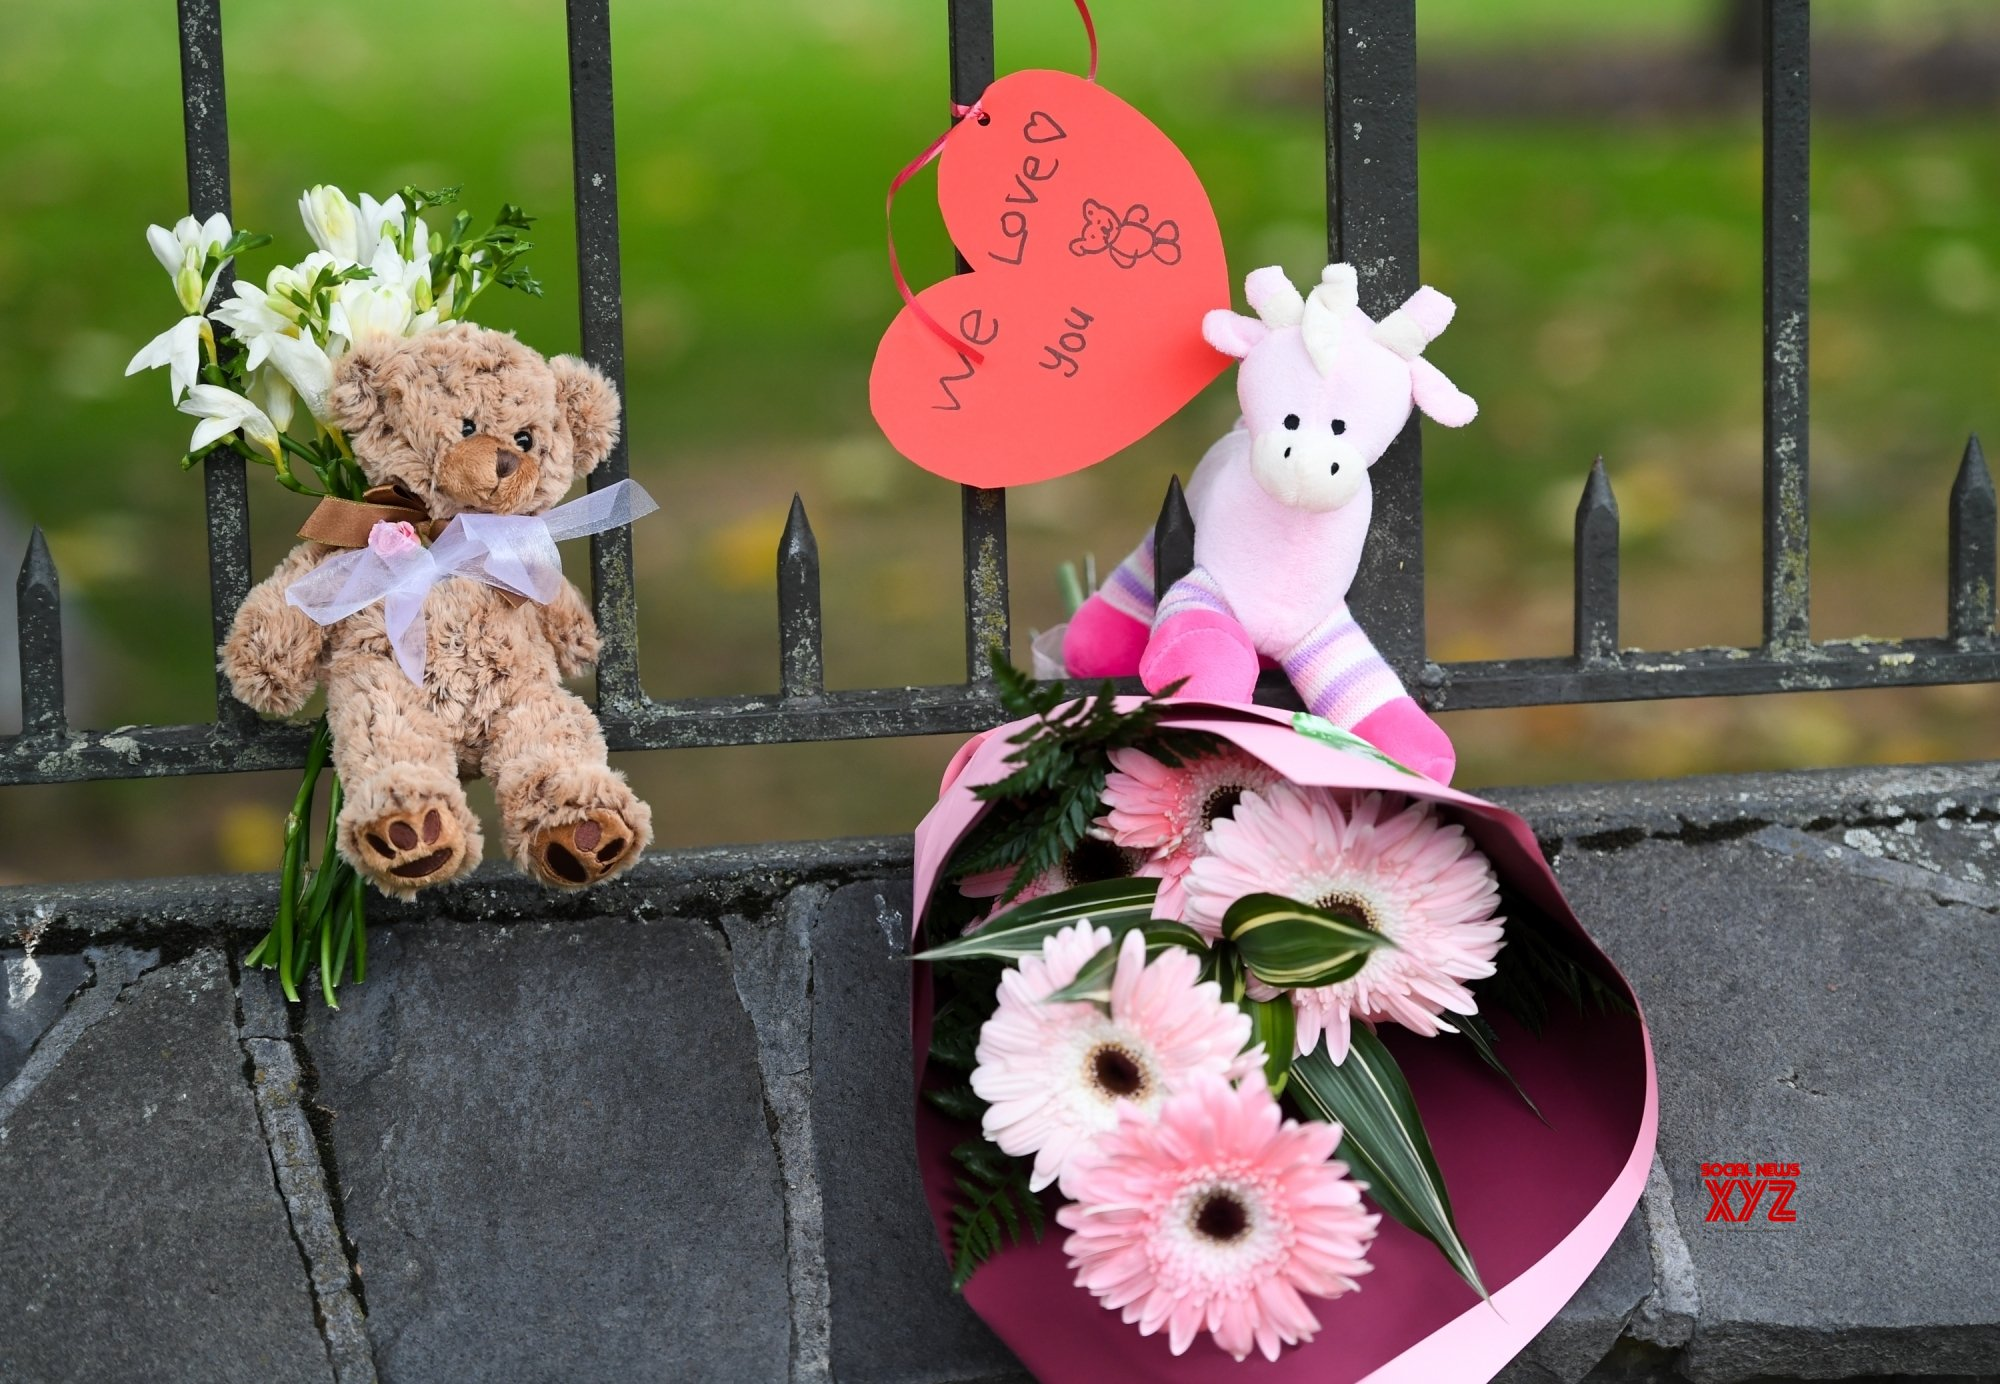 NEW ZEALAND - CHRISTCHURCH - ATTACKS - MOURNING #Gallery